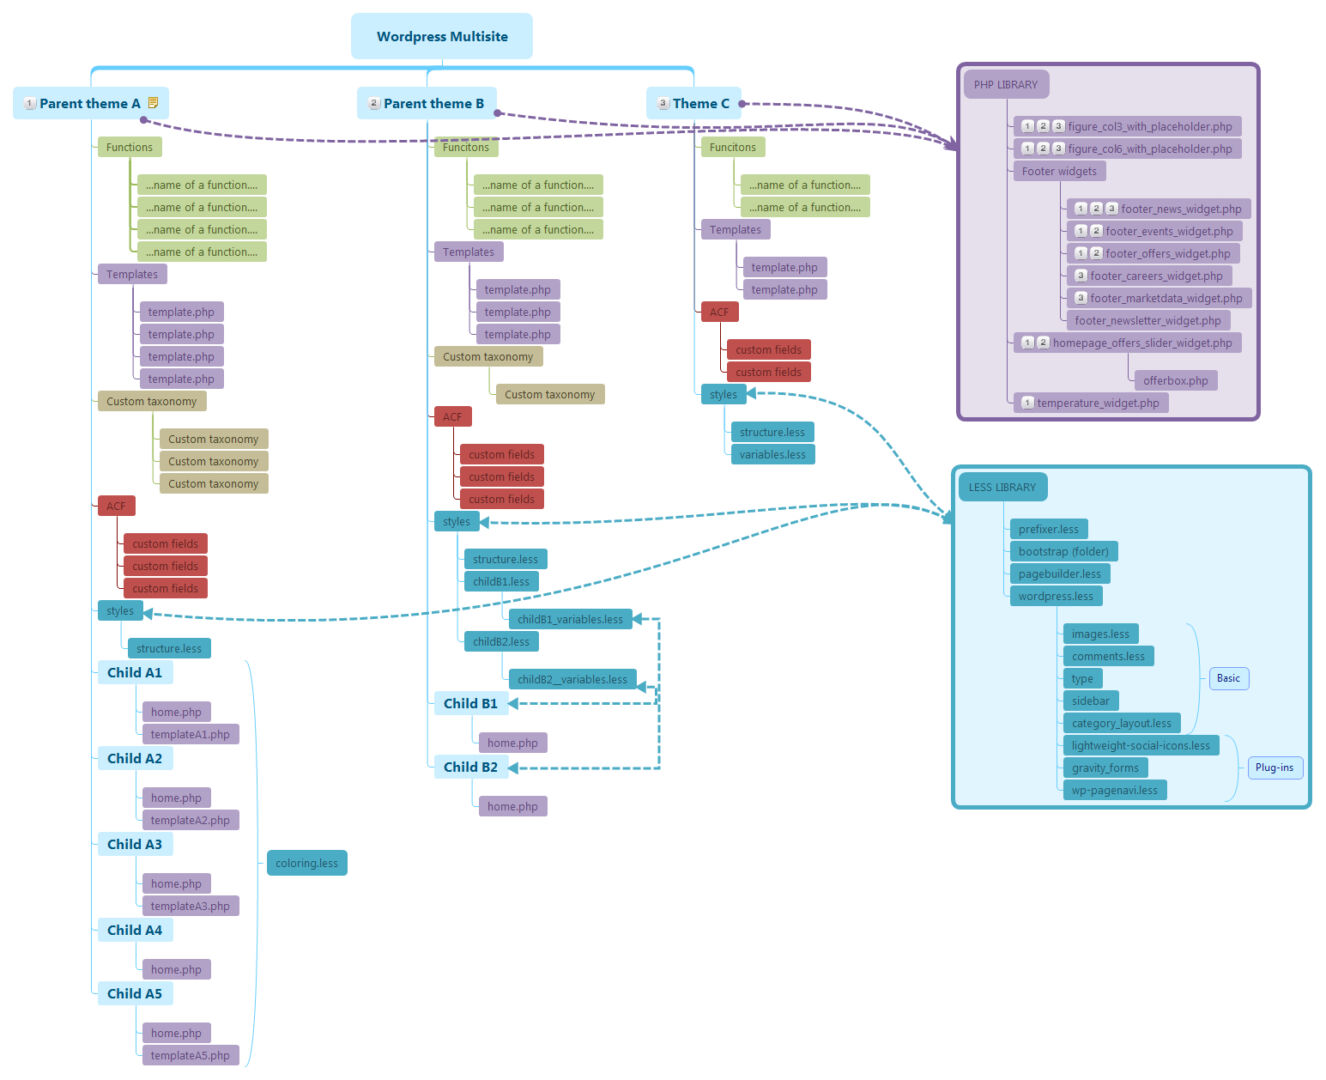 Wordpress Multisite structure with extended libraries